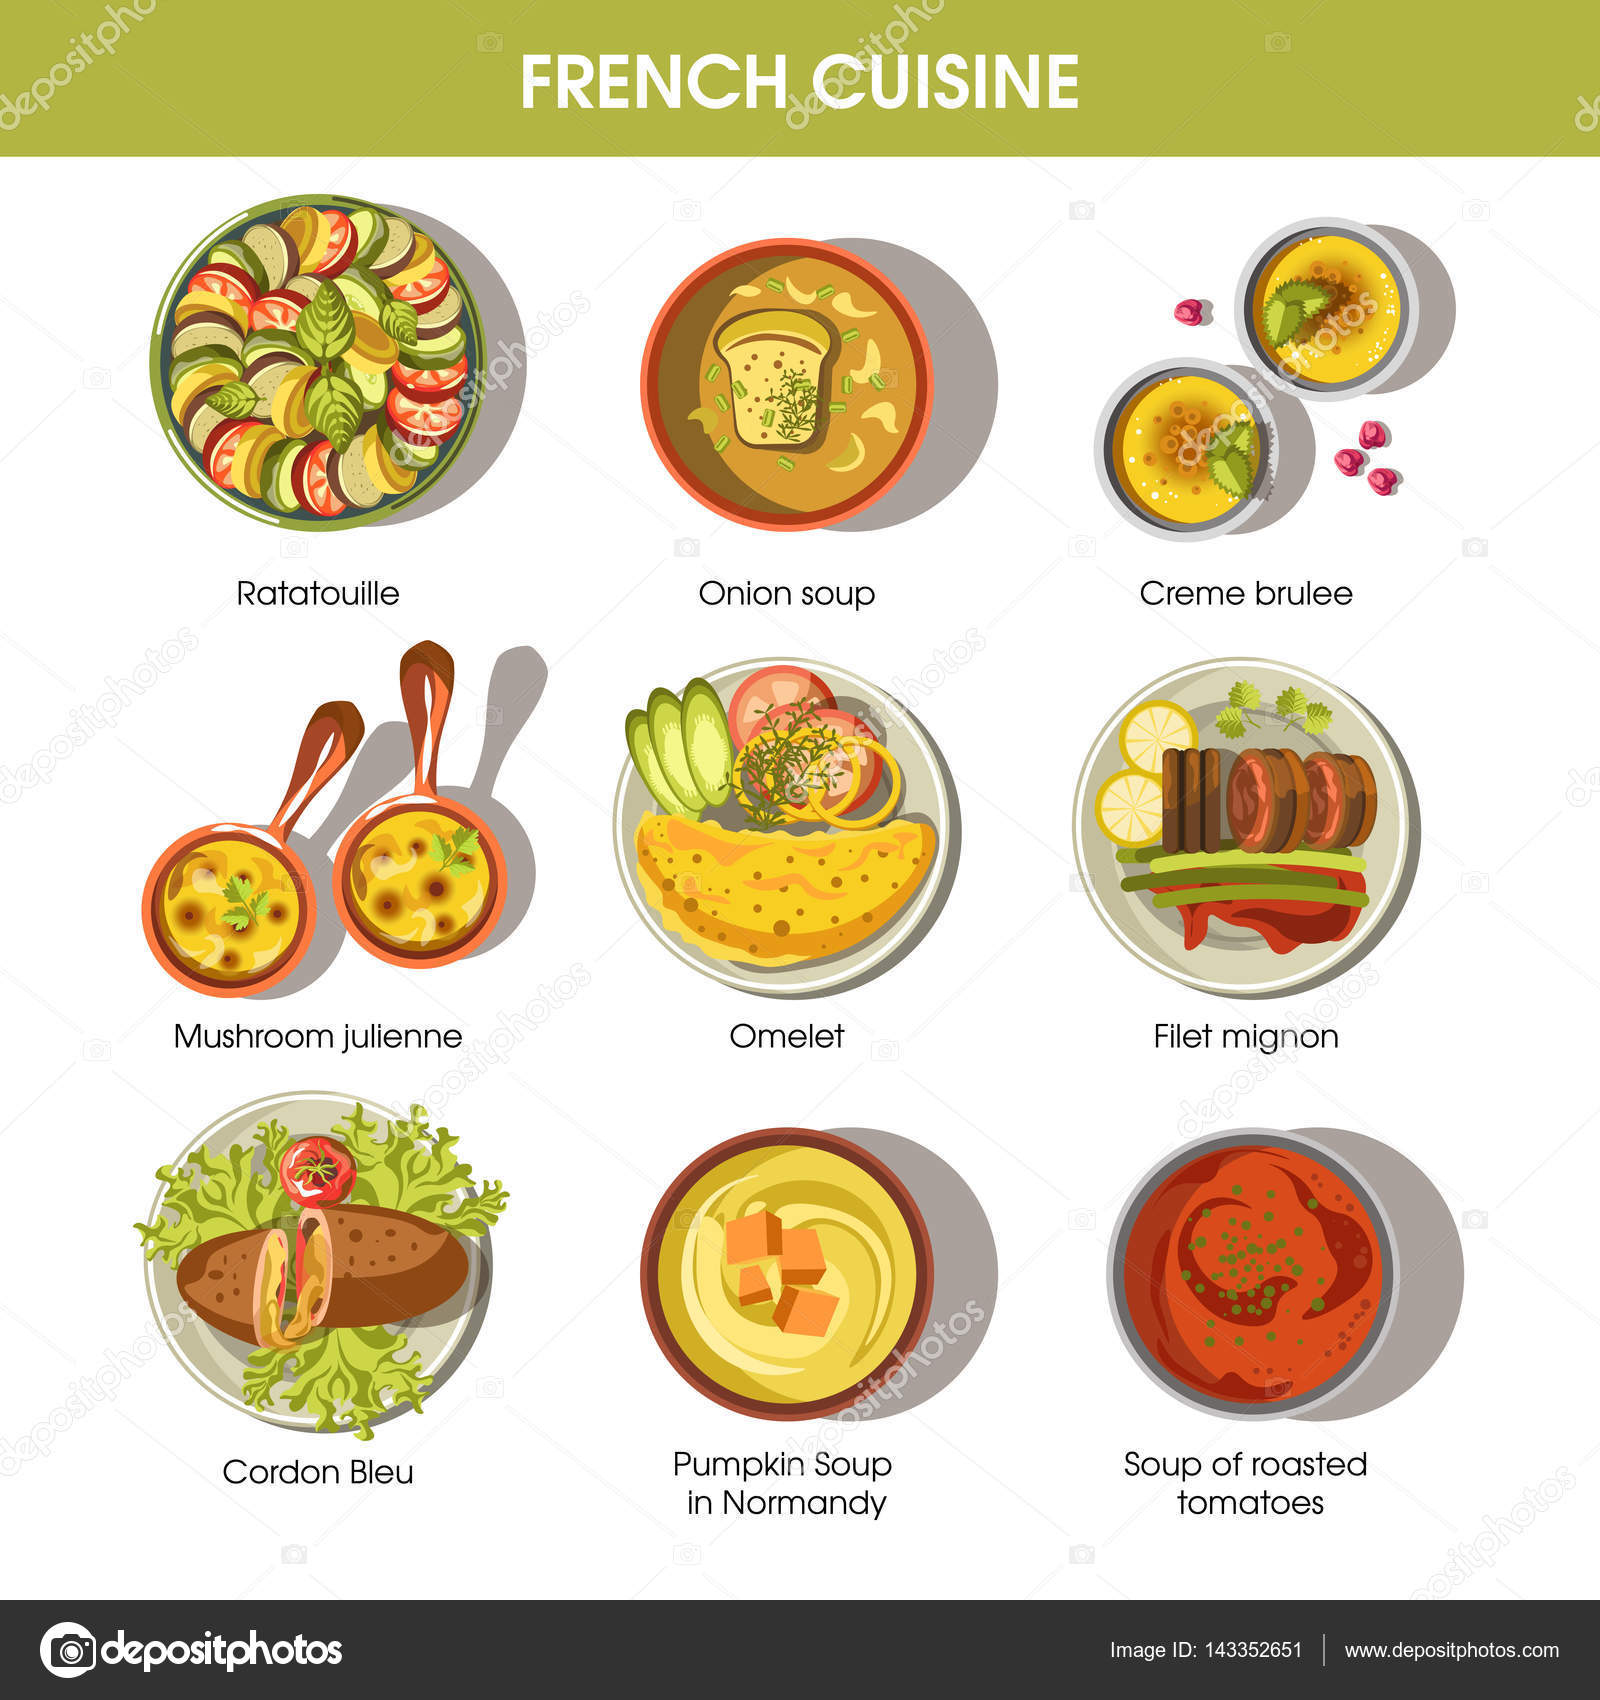 French cuisine dishes templates stock vector for Cuisine francaise